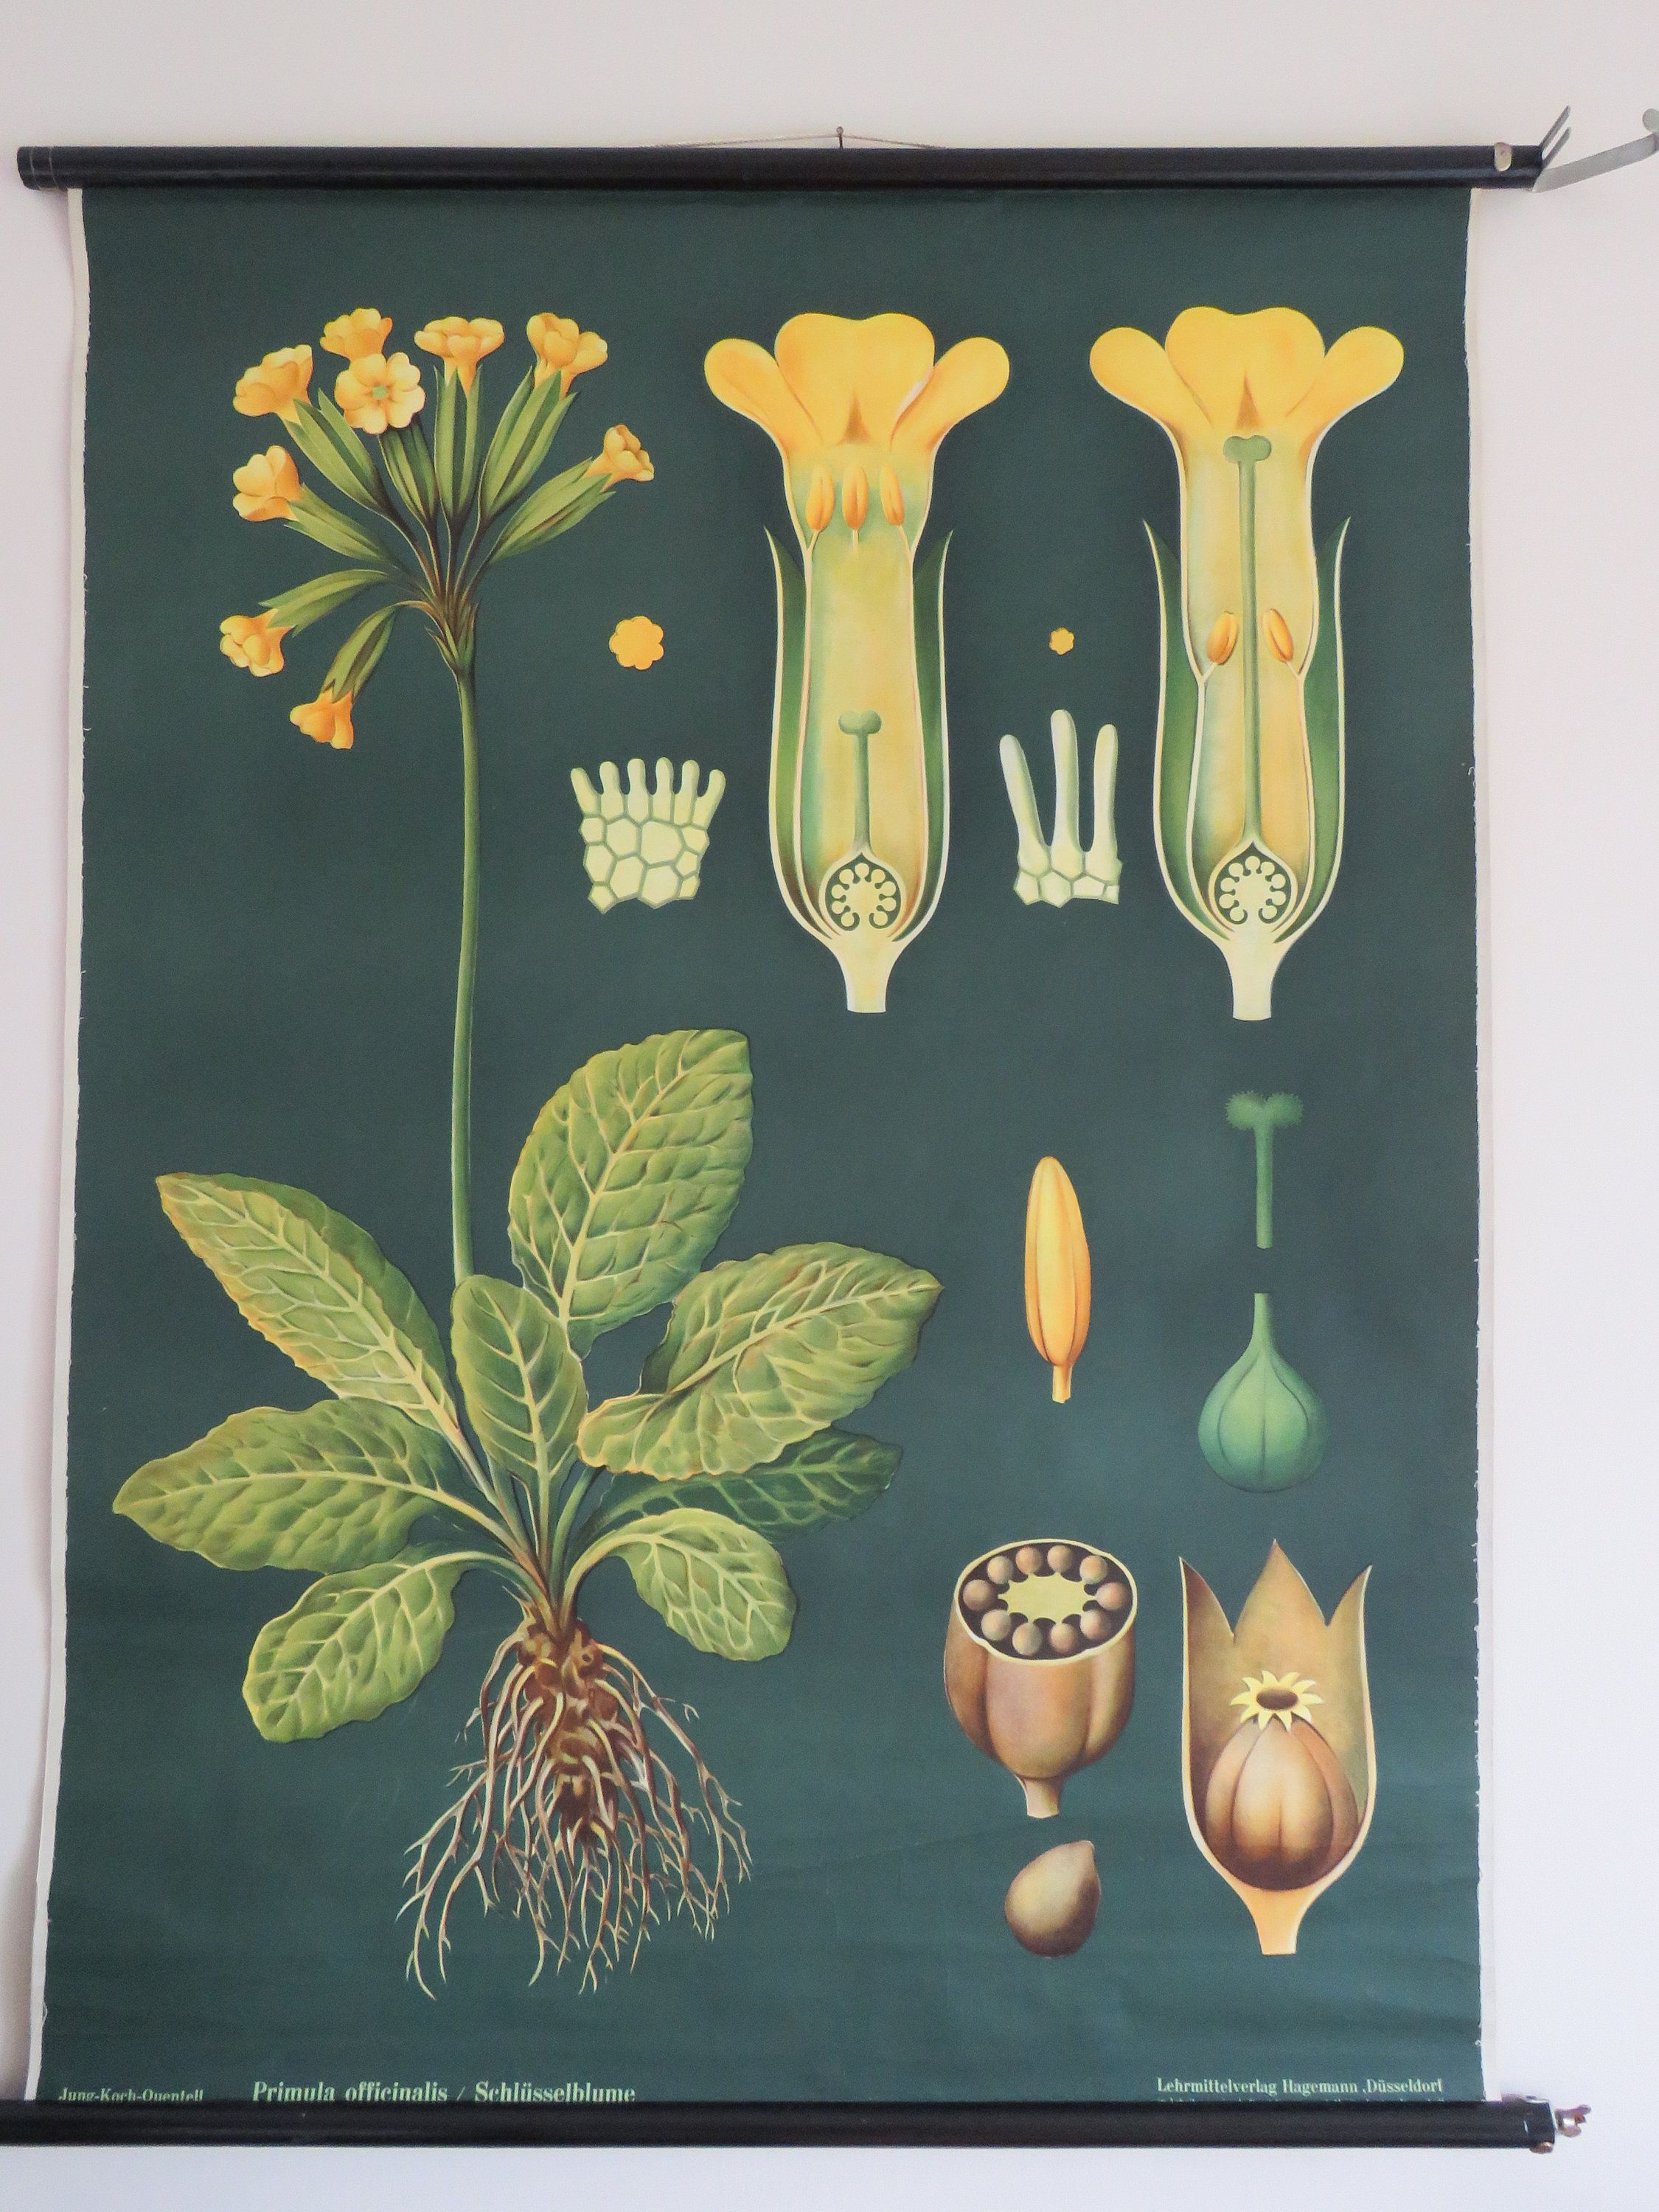 Vintage German School Chart Of Primrose By Jung Koch Quentell